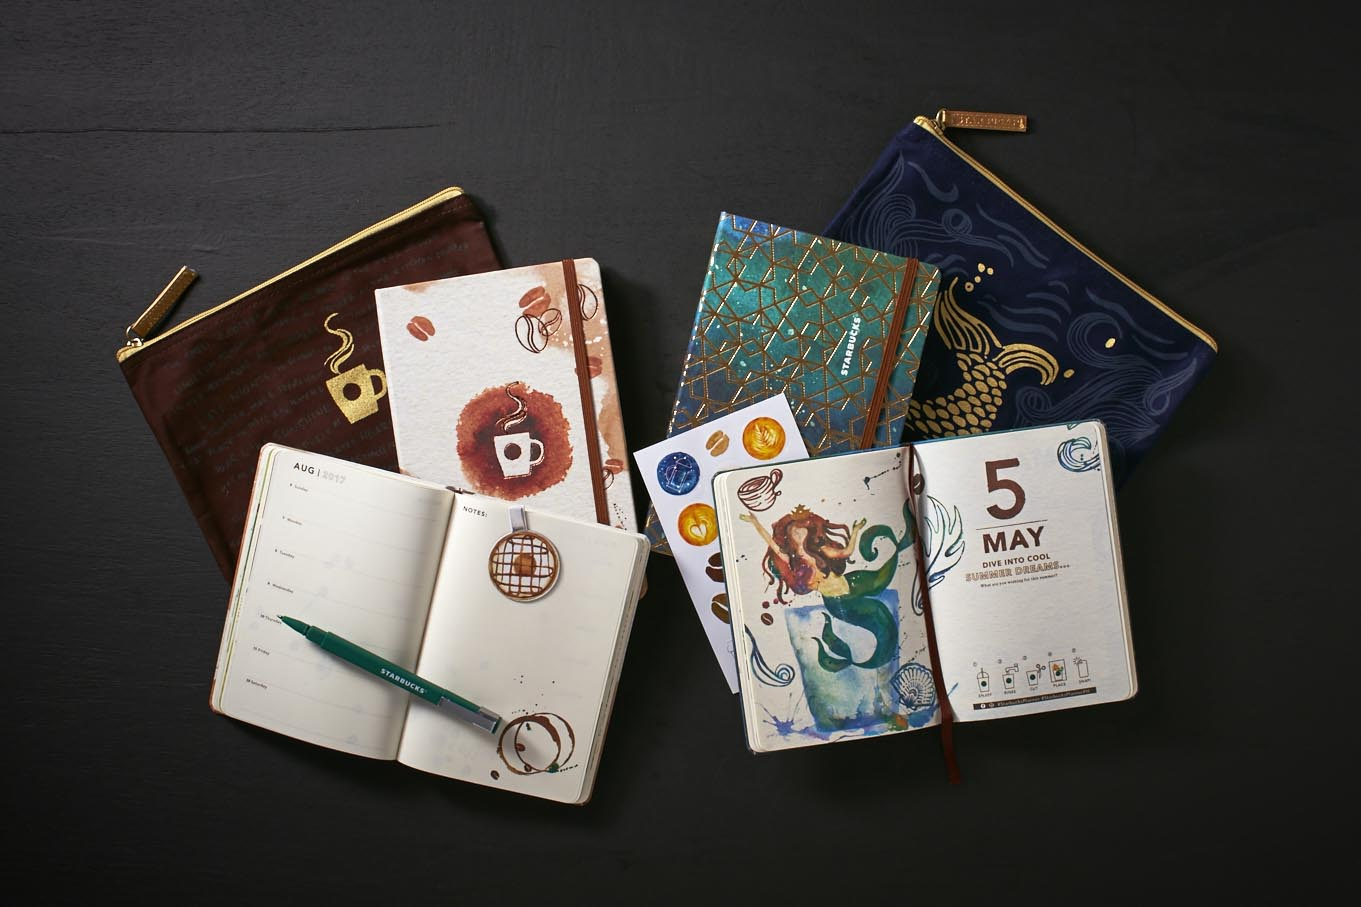 The most awaited Starbucks Coffee 2017 Planners